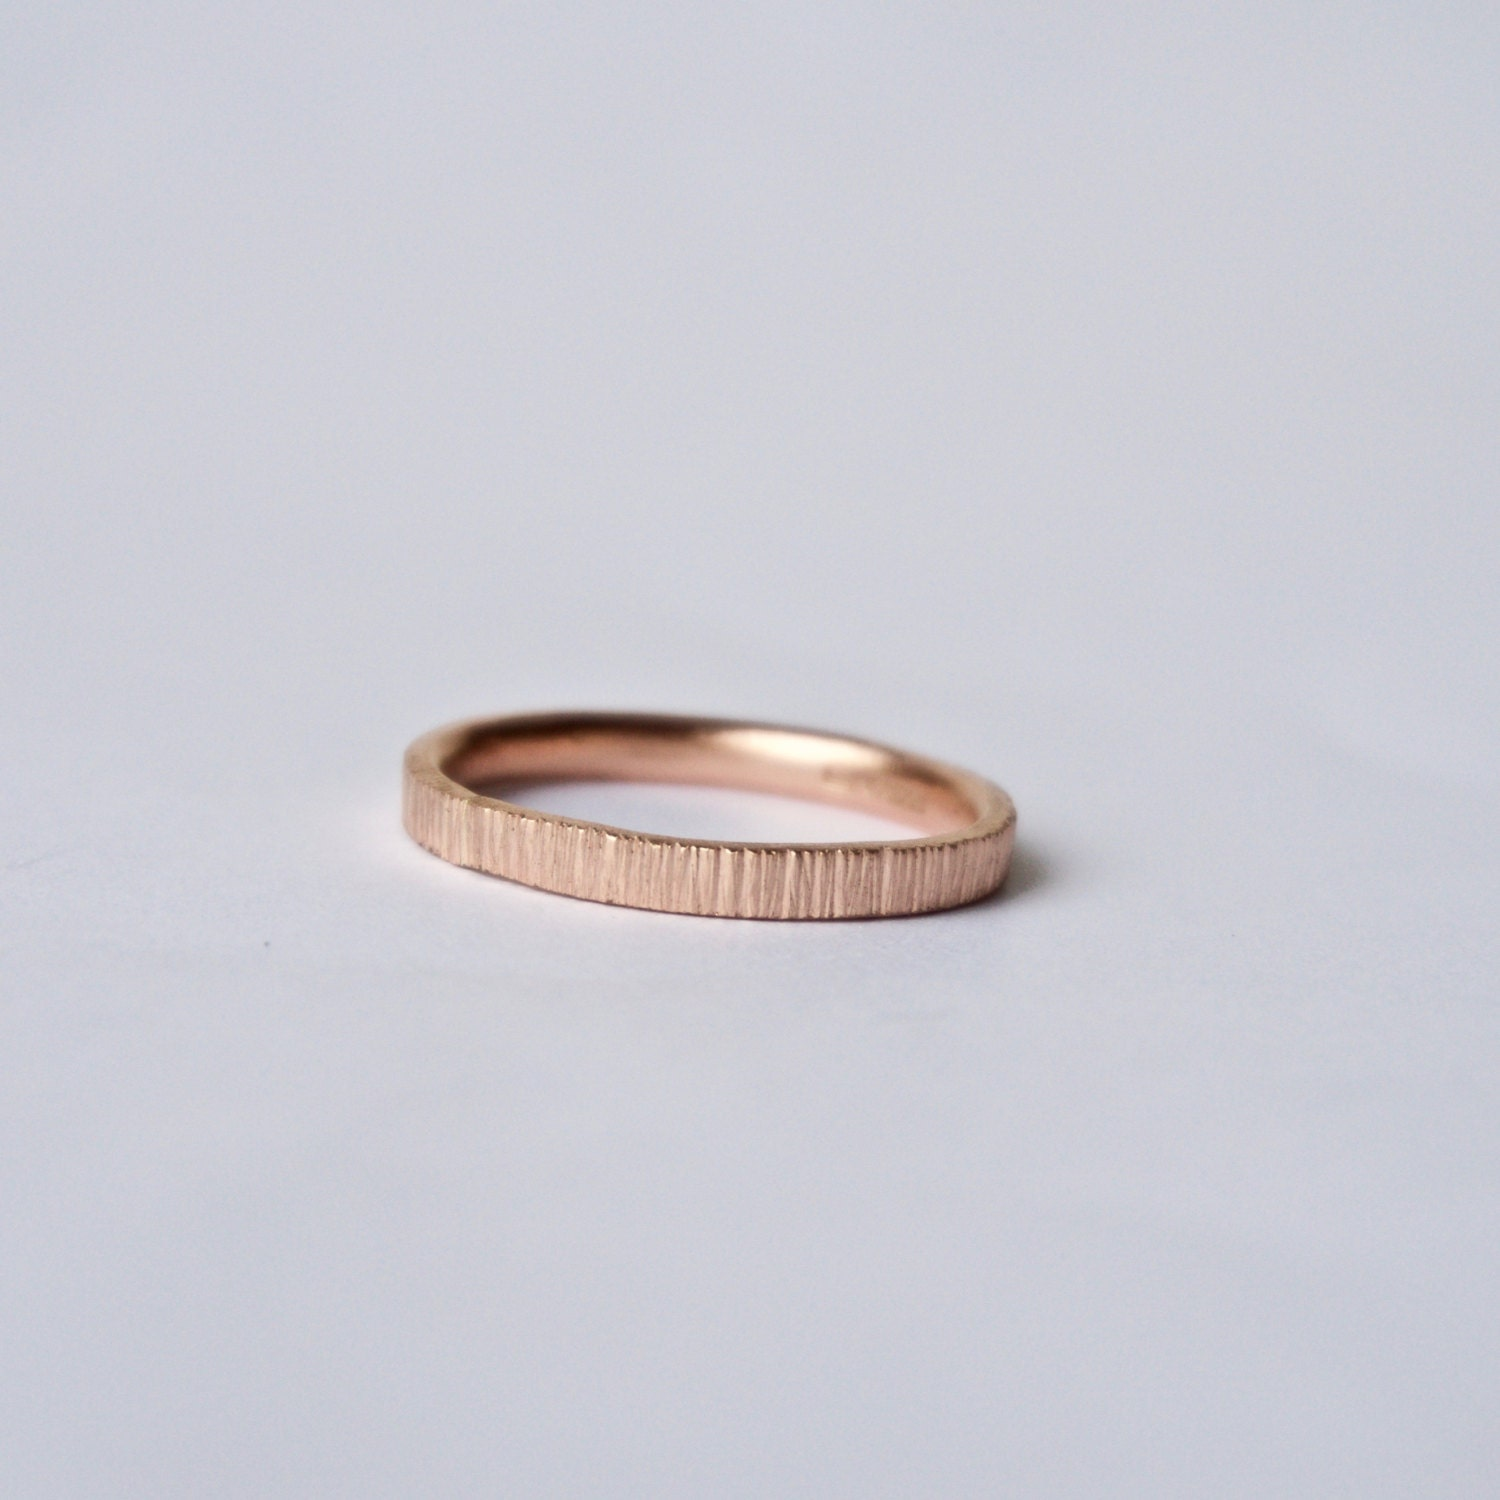 rose gold tree bark ring unique wedding unique womens wedding rings Rose Gold Tree Bark Ring Unique Wedding Band Women s Wedding Ring Men s Wedding Band Rose Pink Red Gold Thin Ring